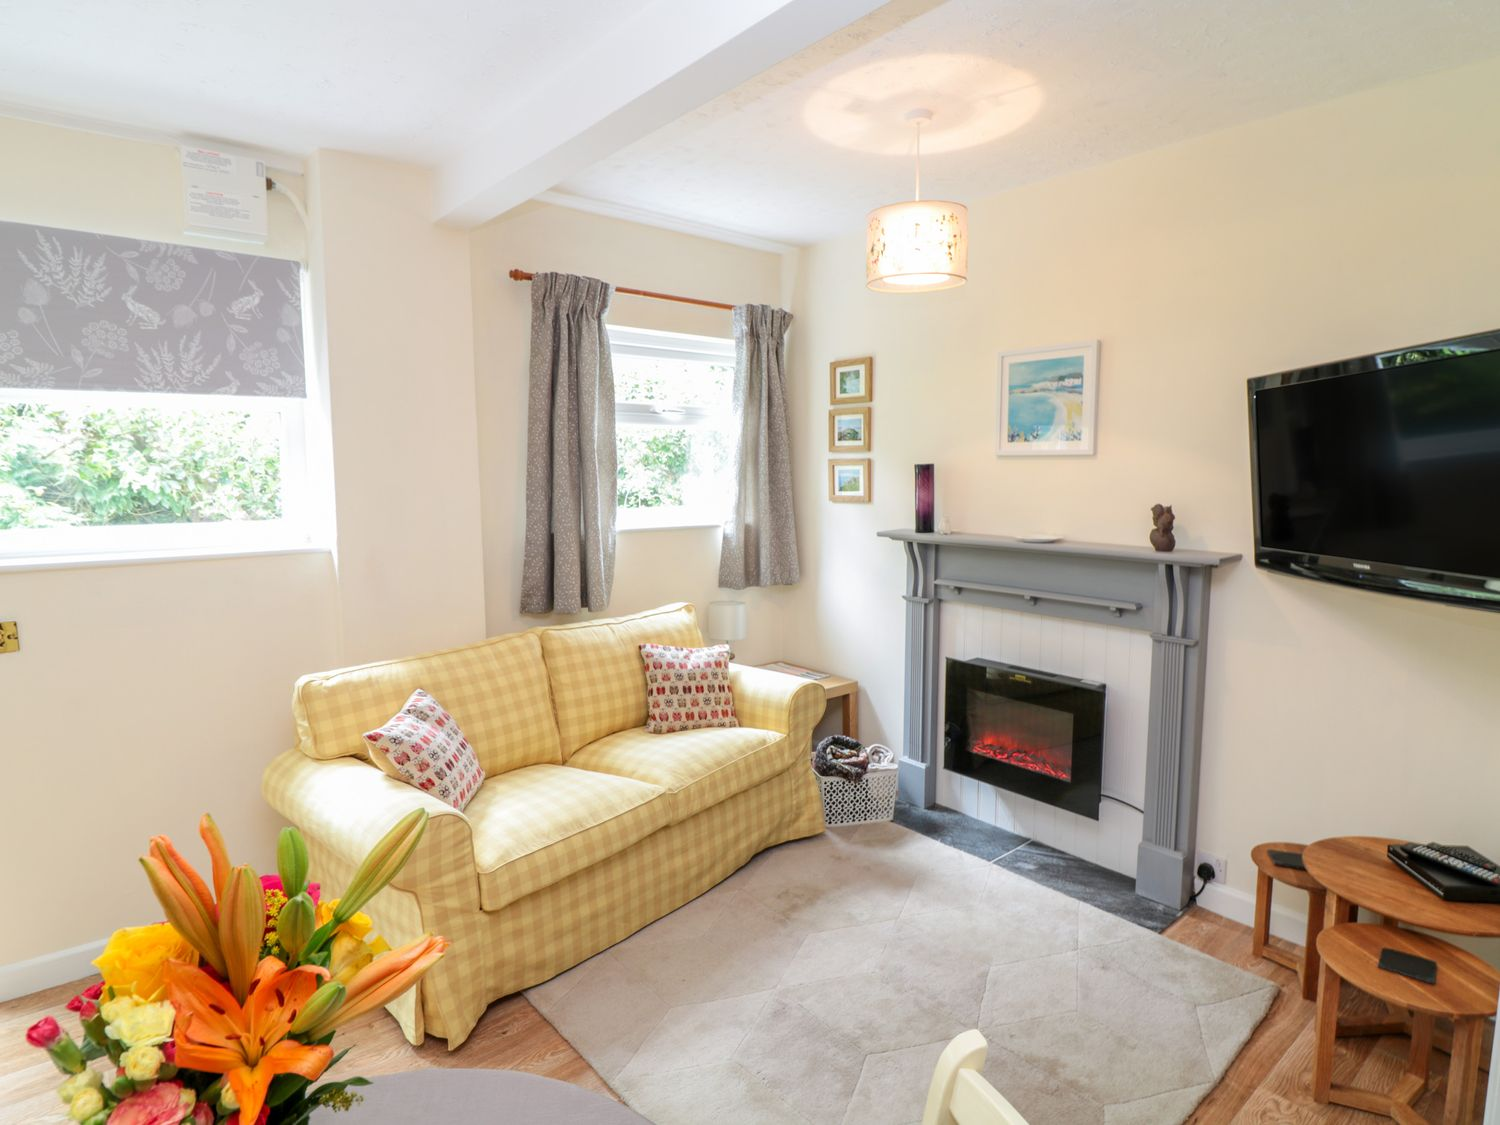 The Roost in Camborne - sleeps 2 people